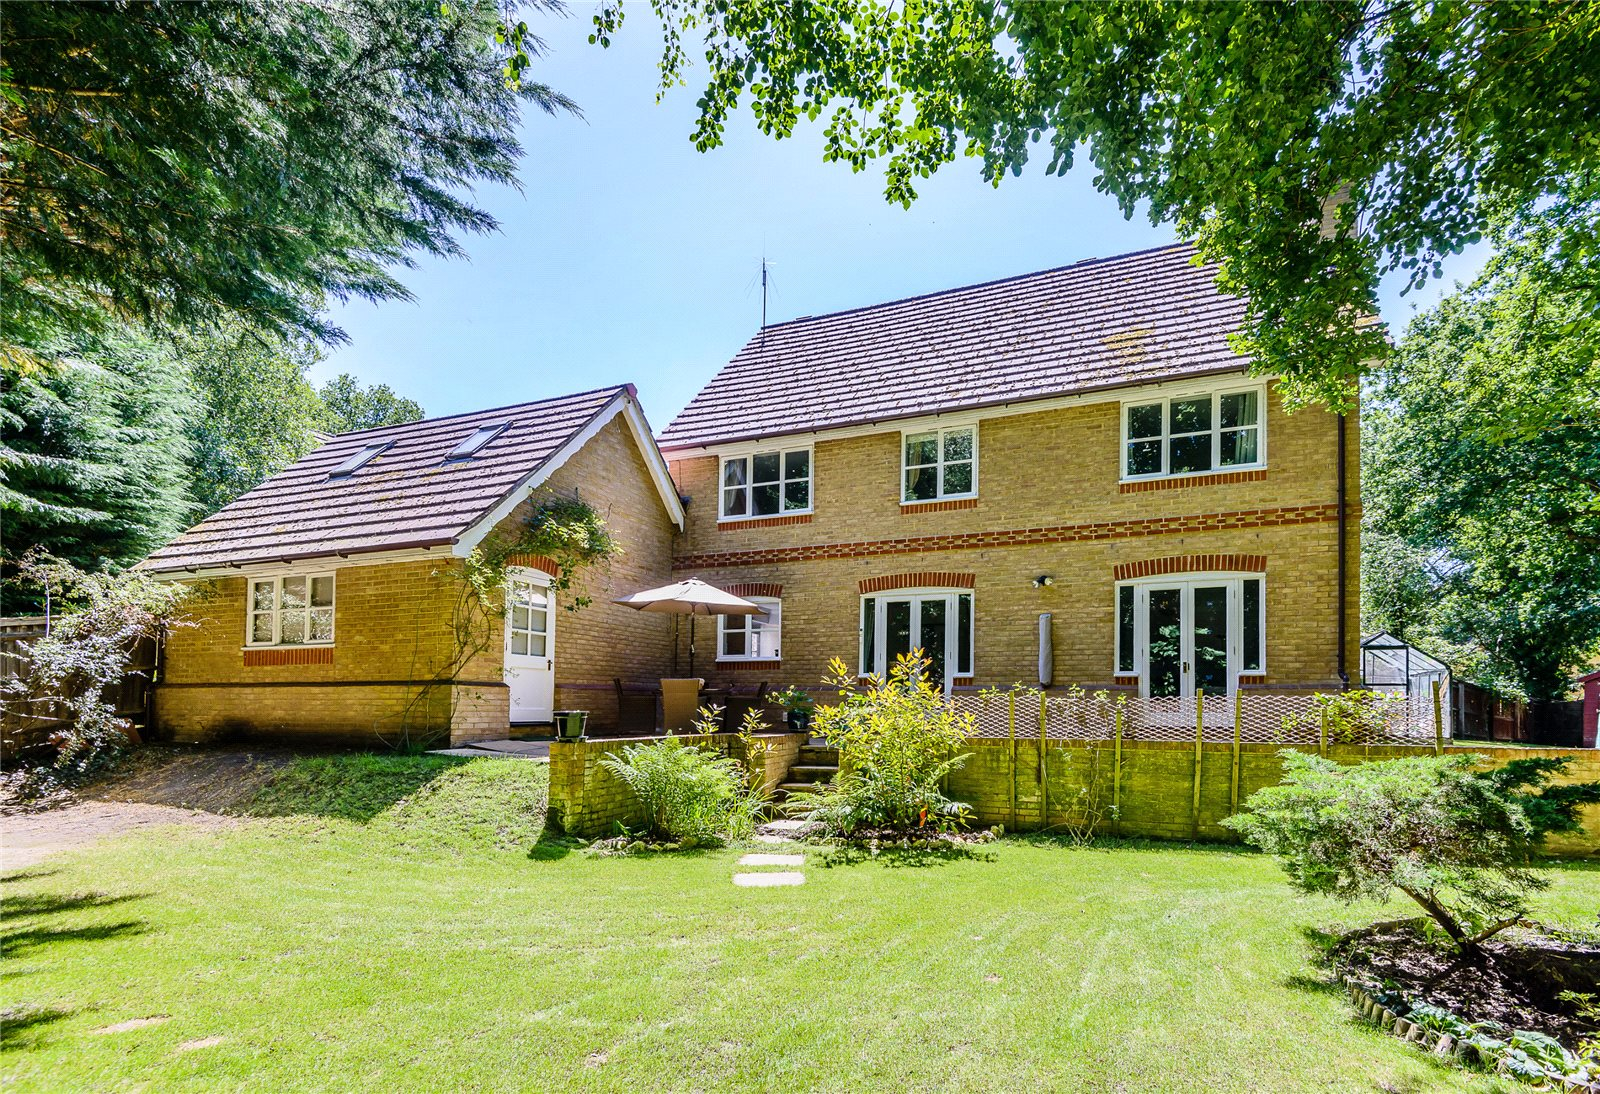 Additional photo for property listing at Charters Way, Ascot, Berkshire, SL5 Ascot, Inghilterra